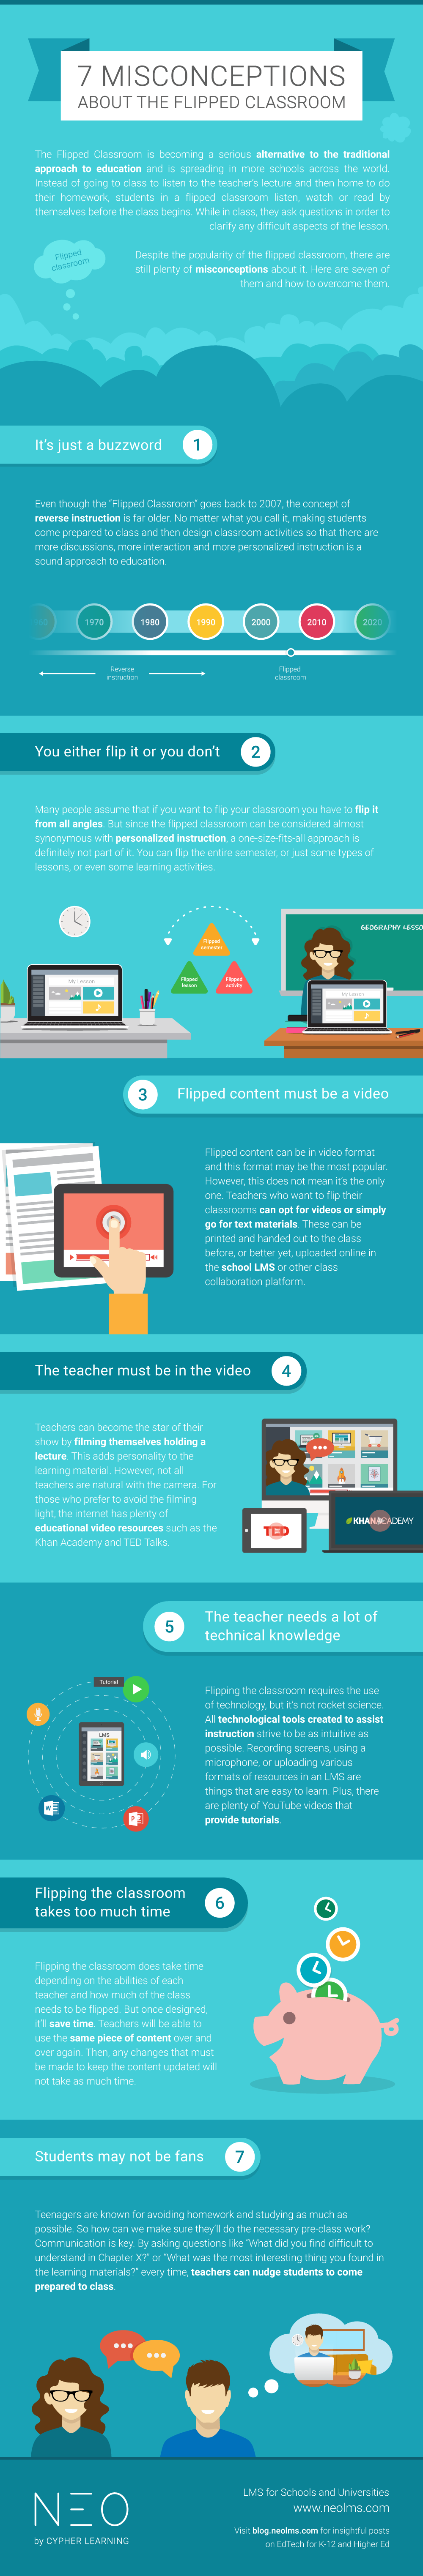 7 Misconceptions about the flipped classroom